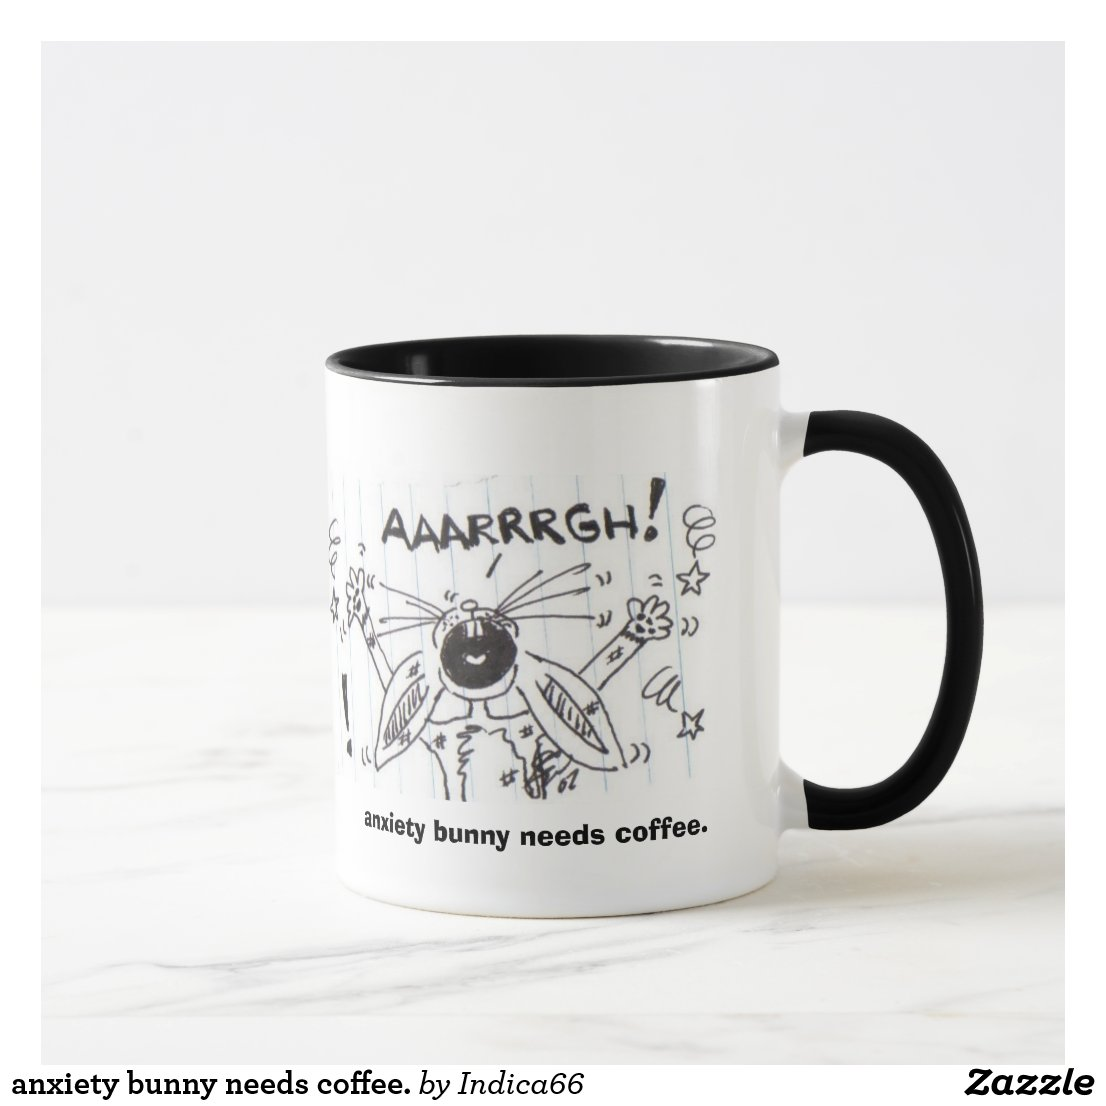 anxiety bunny needs coffee. mug